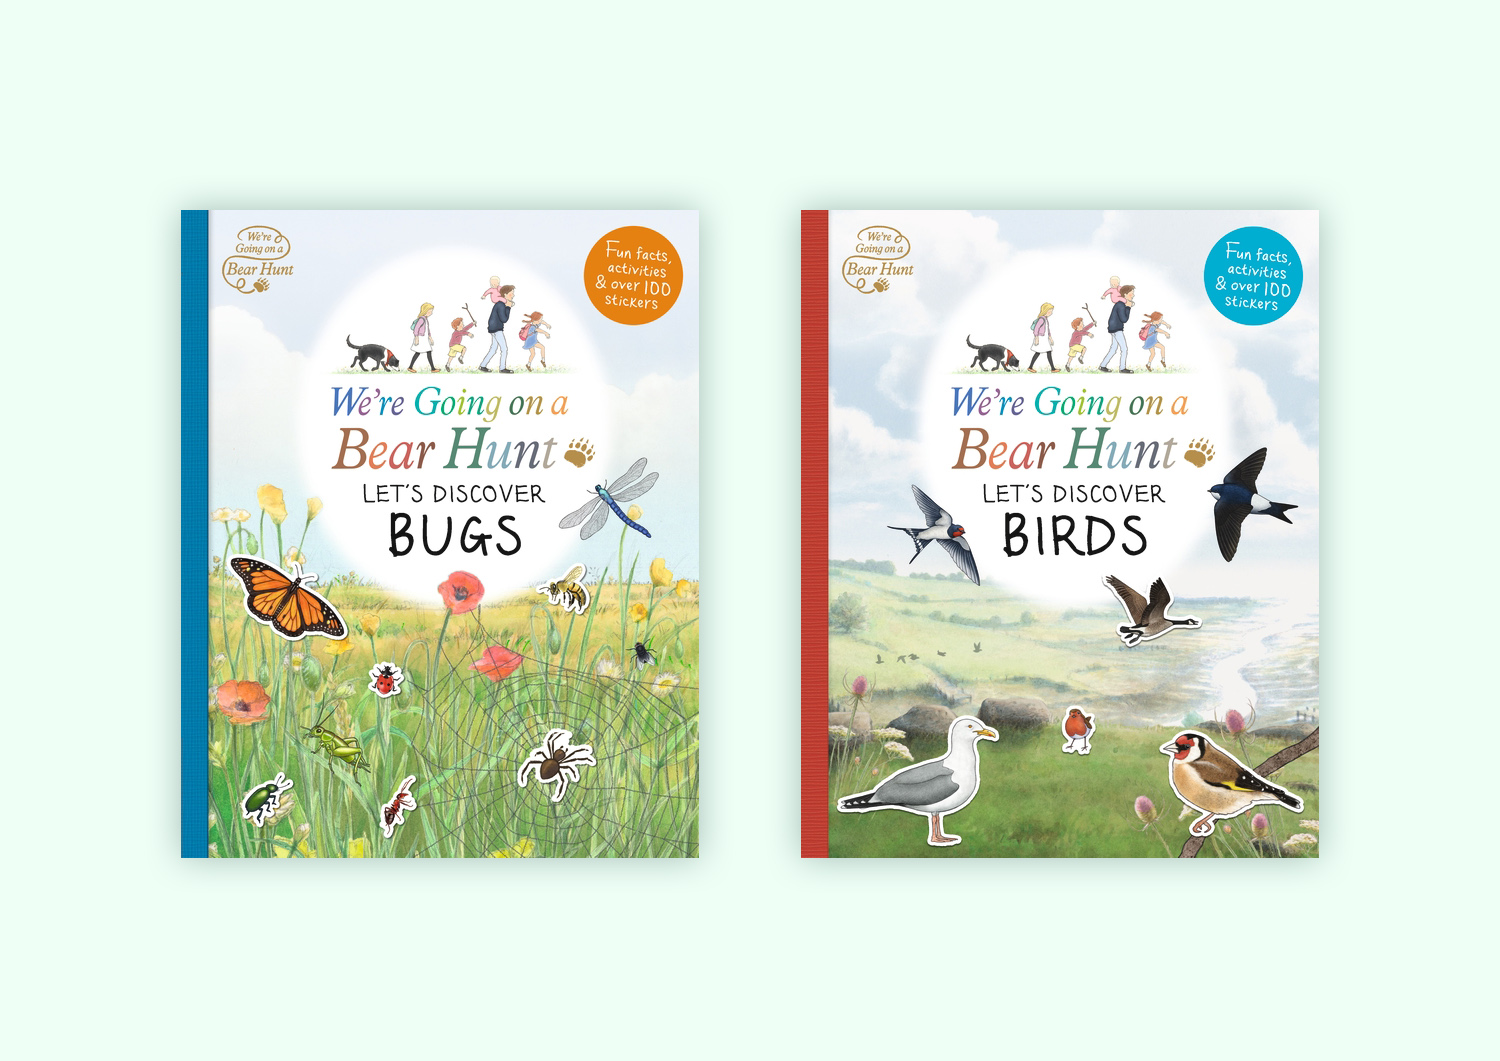 We're Gong on a Bear Hunt: Let's Discover Bugs & Birds